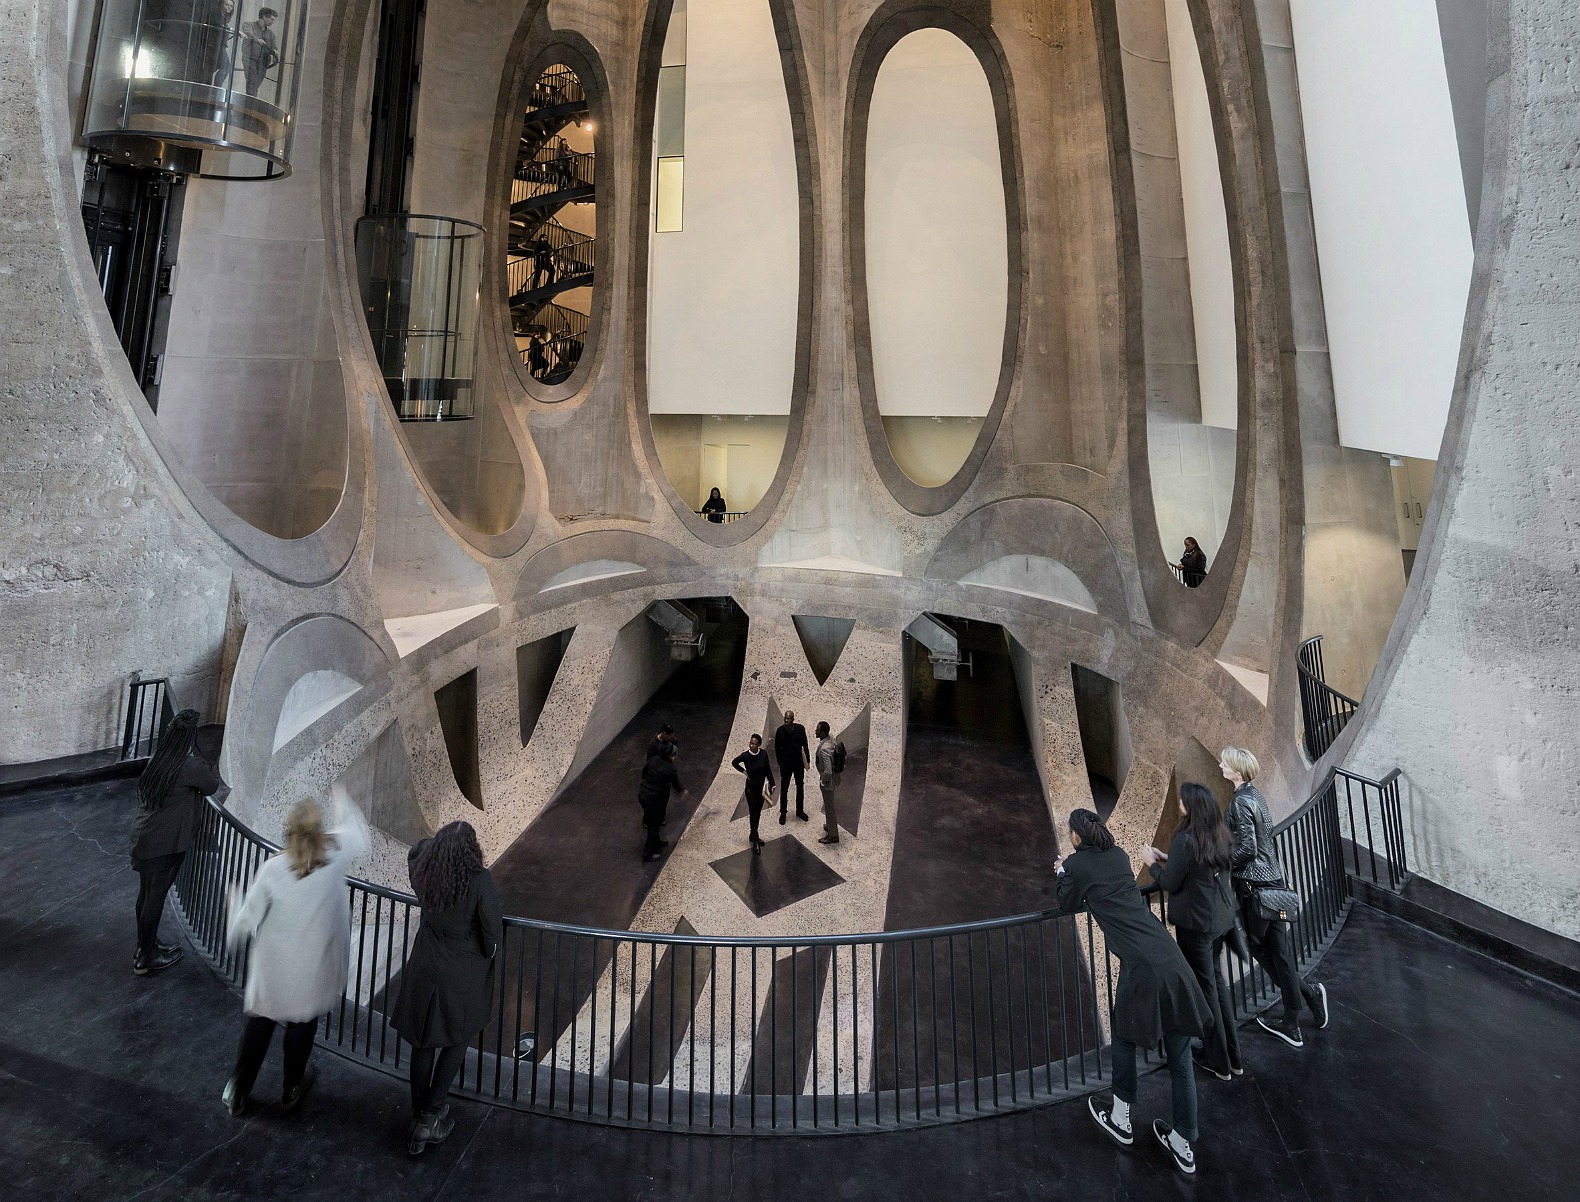 Thomas Heatherwick unveils massive museum carved out of a historic